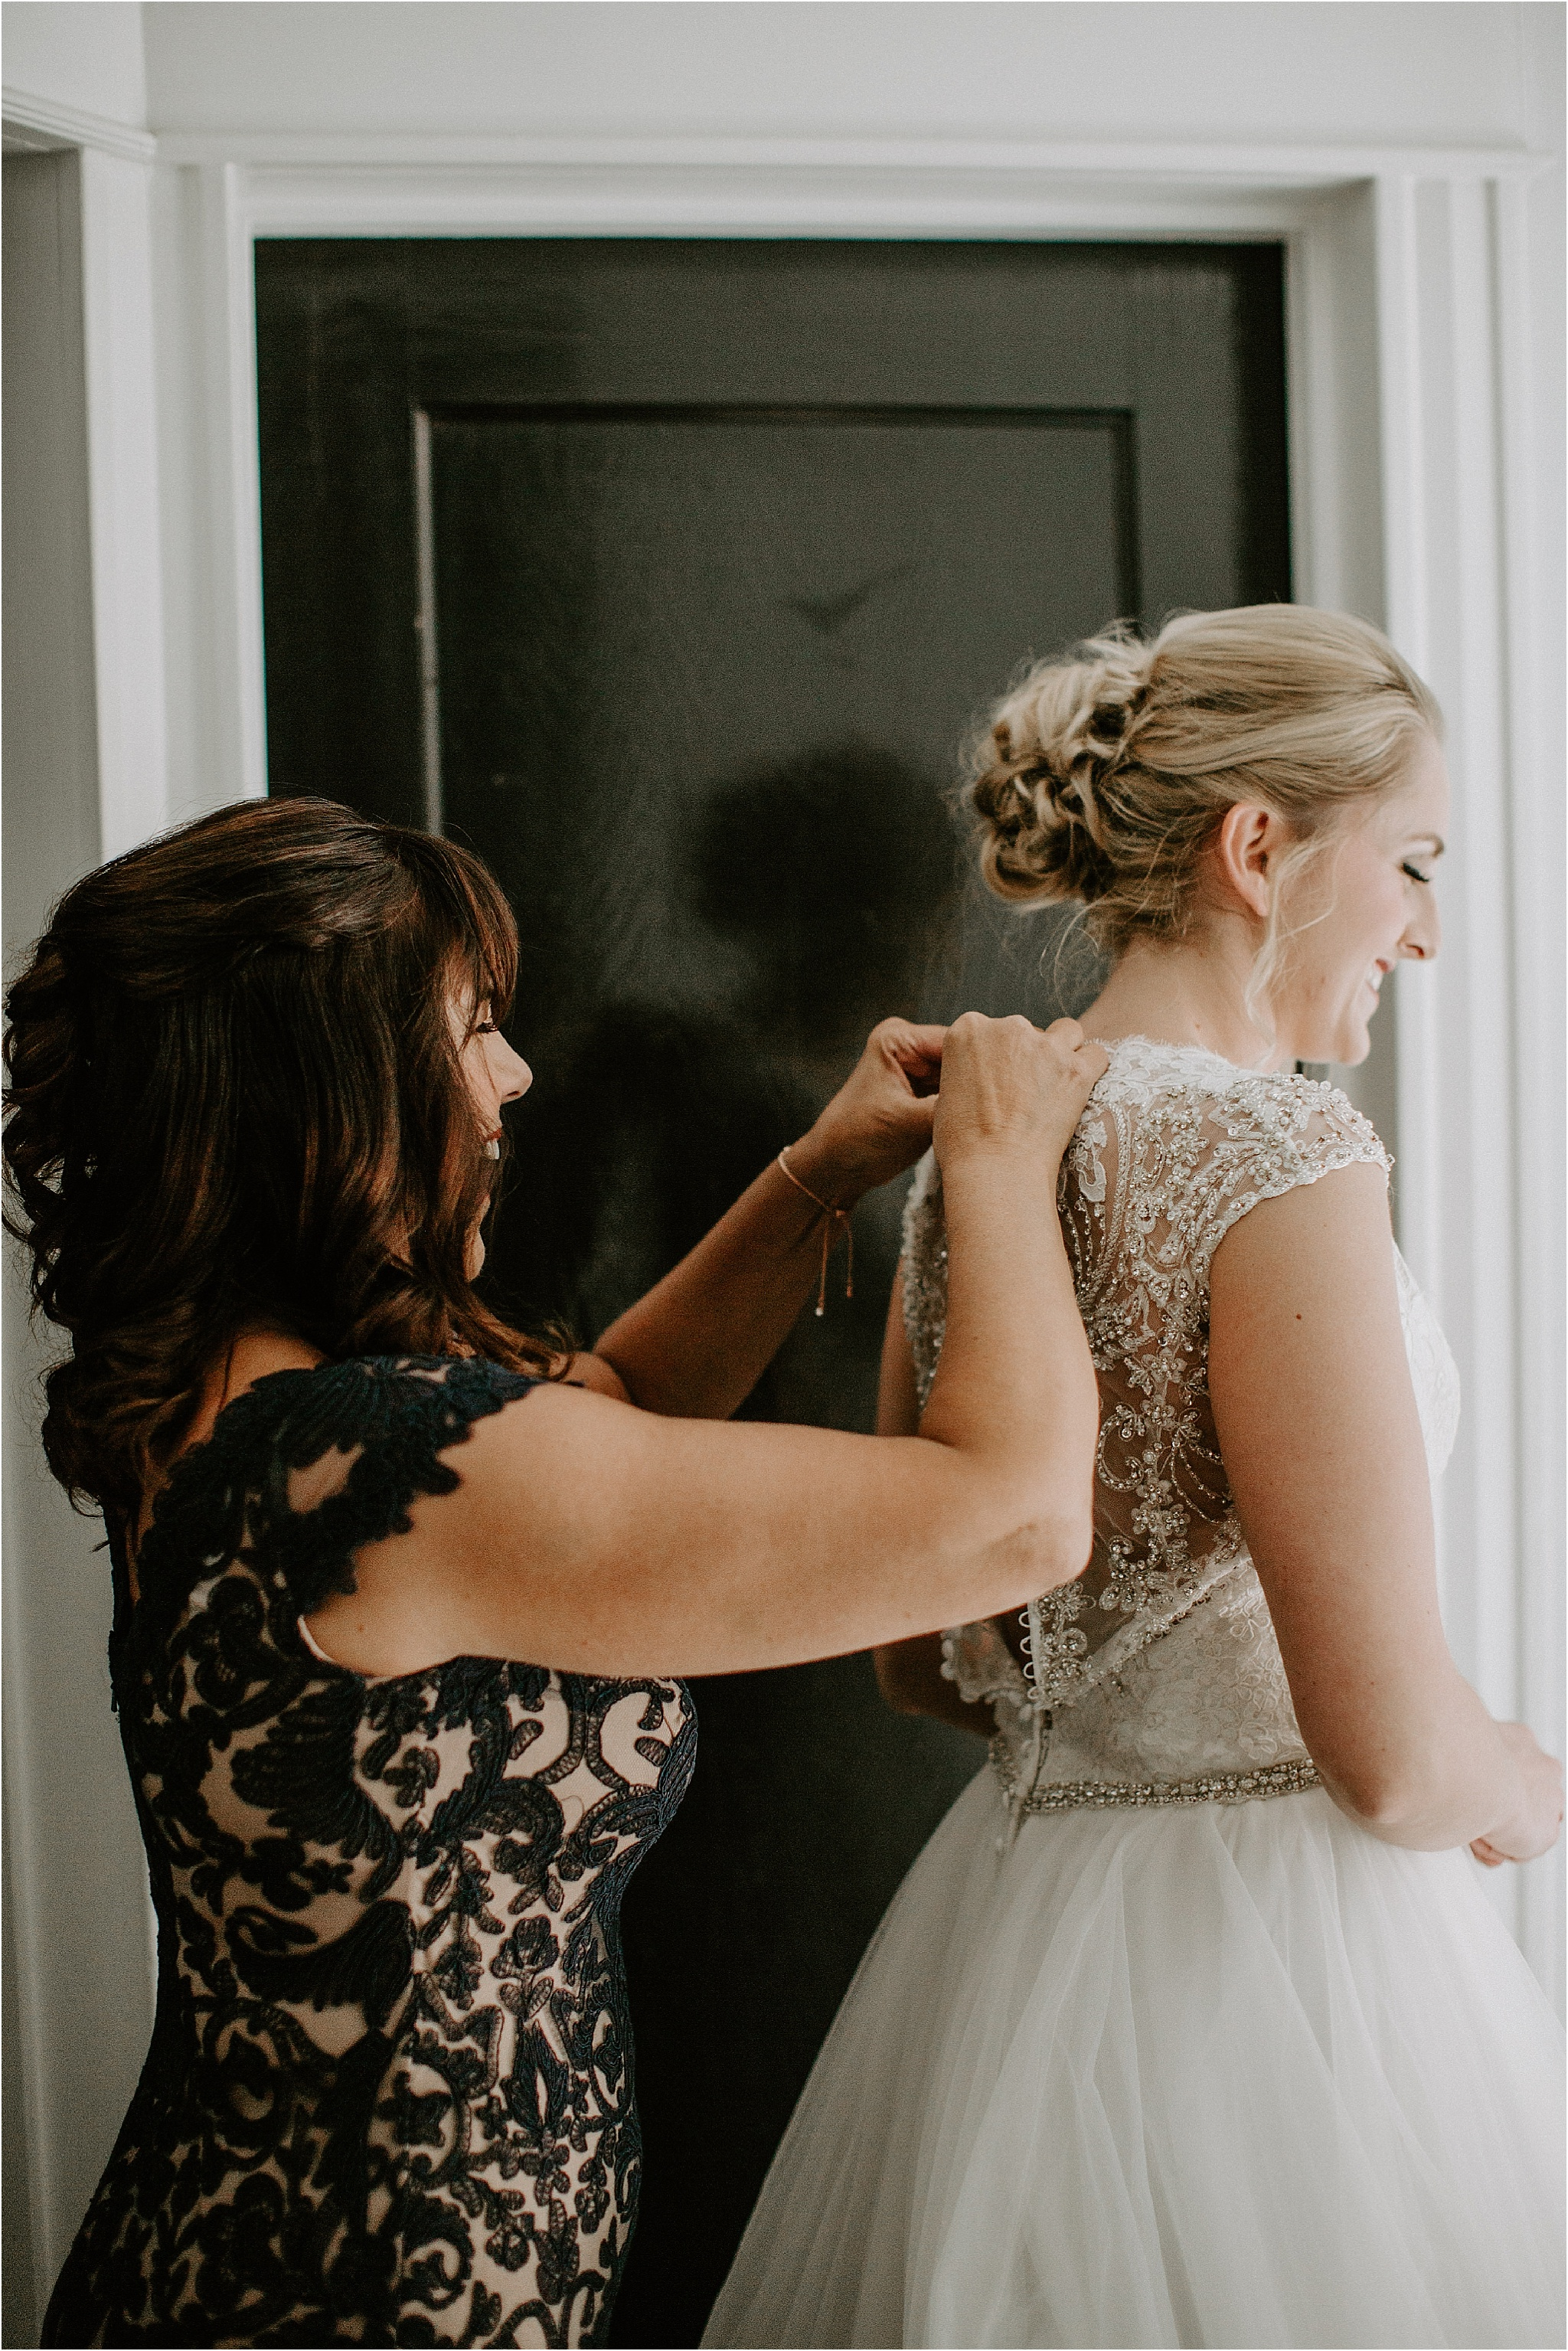 Sarah_Brookhart_Philadelphia_Wedding_Photographer_0005.jpg